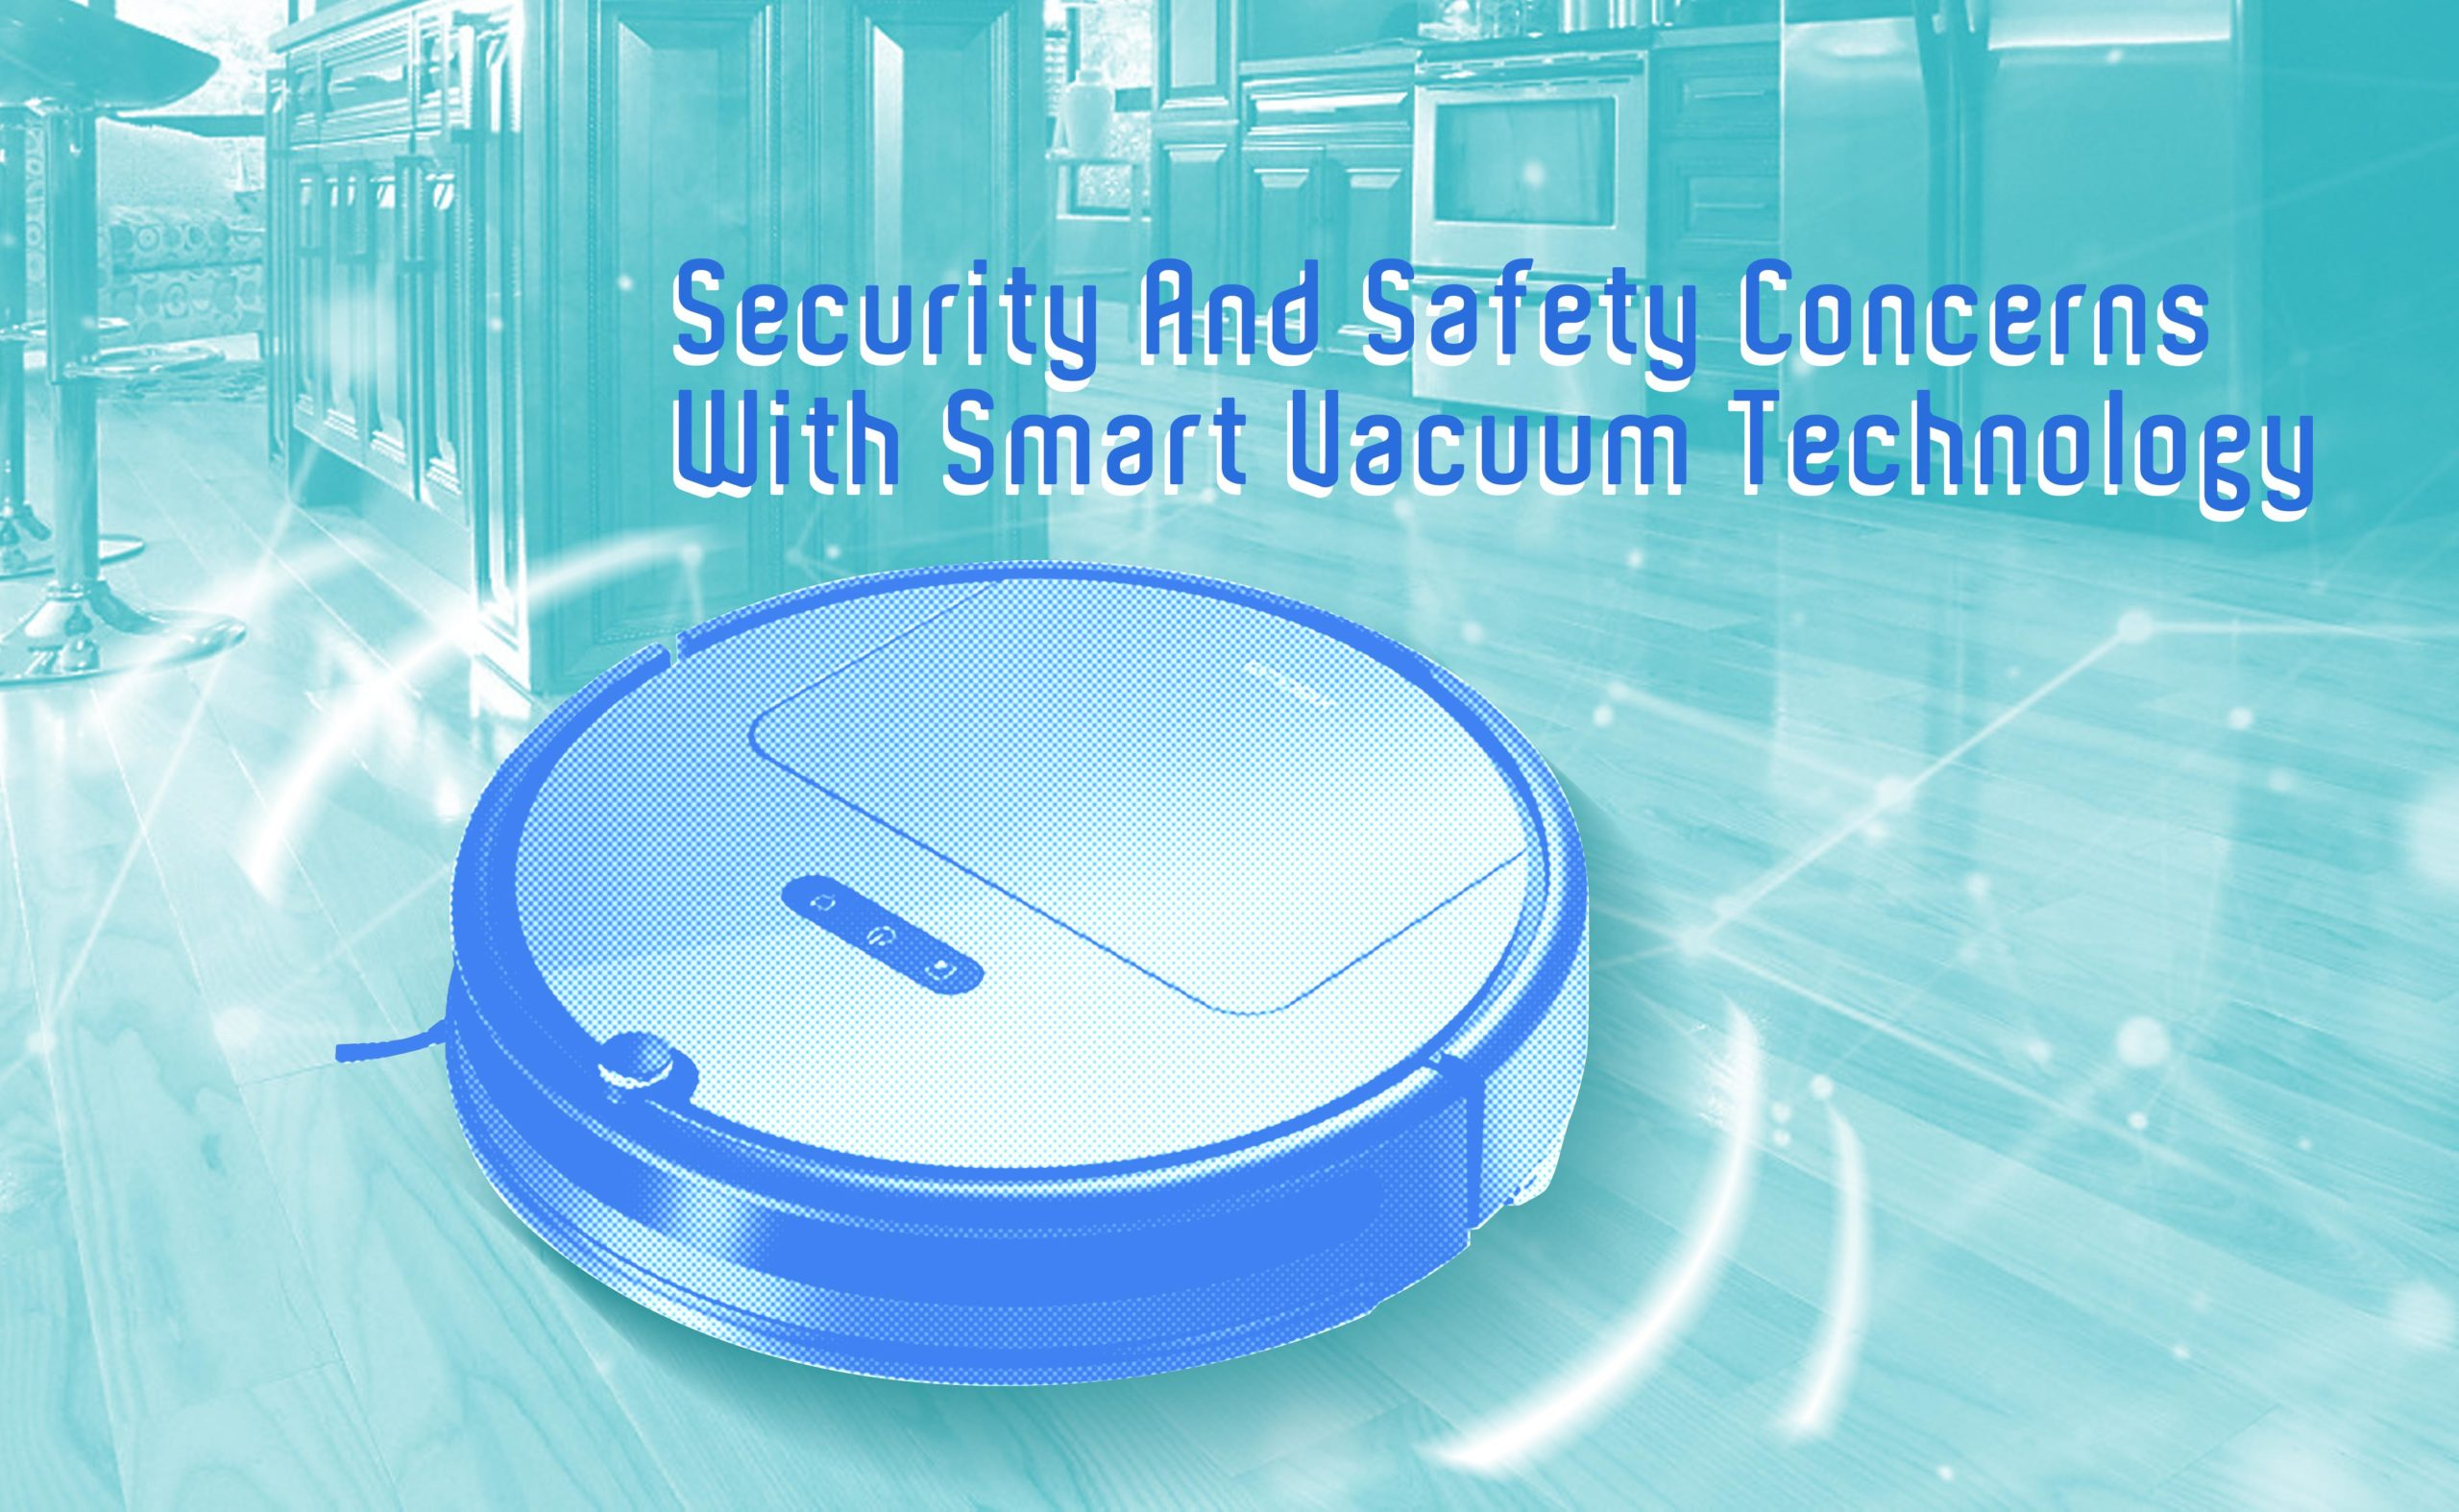 Security And Safety Concerns With Smart Vacuum Technology